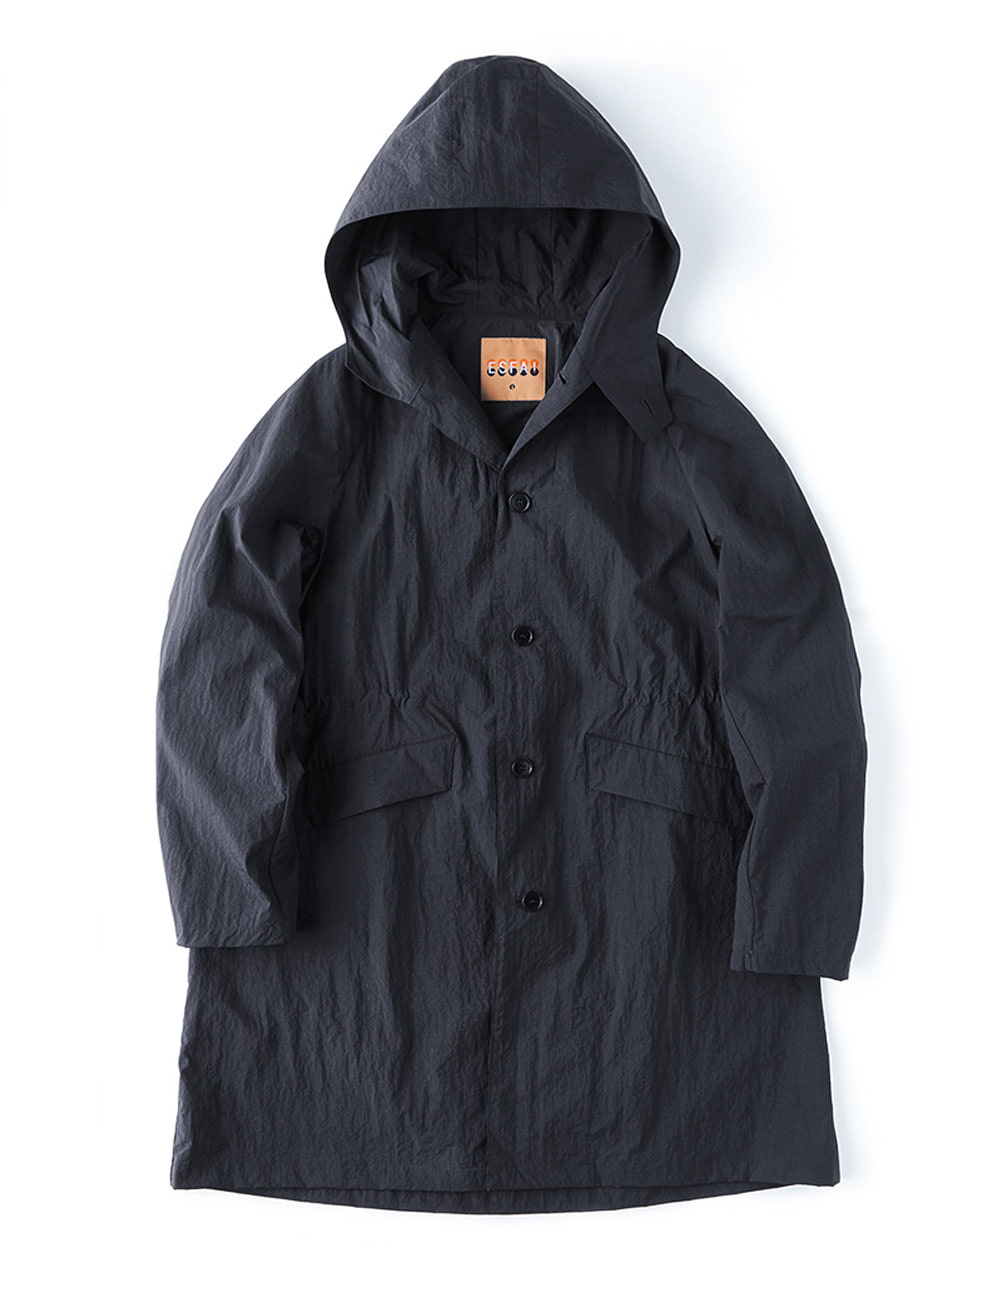 r28  hylon over coat (Black)